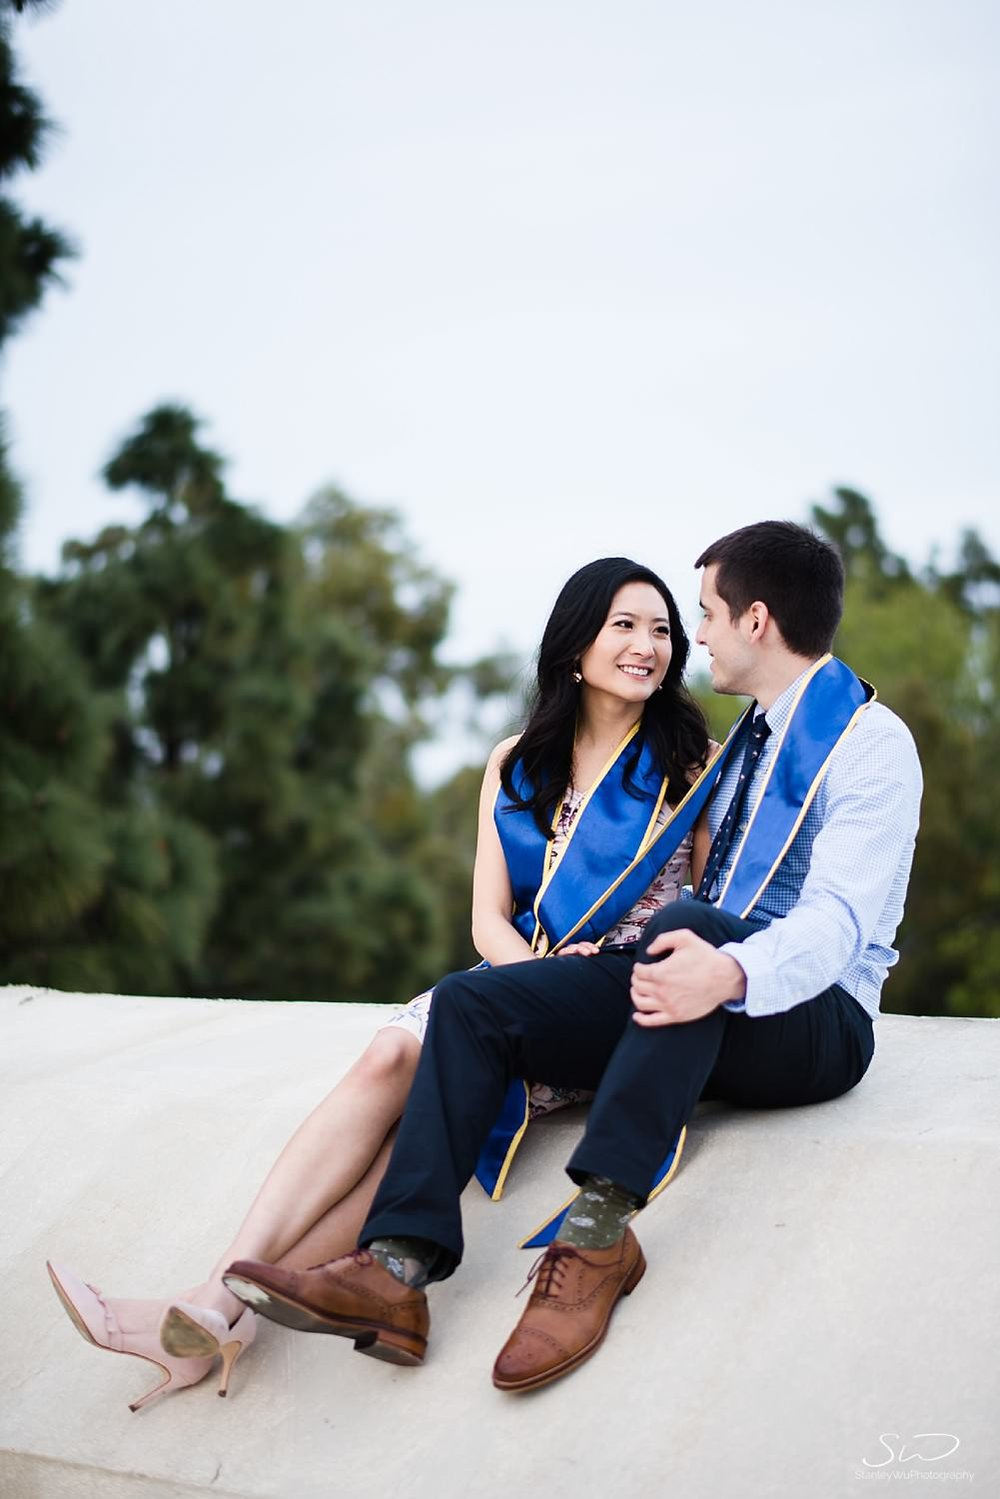 ucla-couple-session-graduation-senior-portraits_0044.jpg